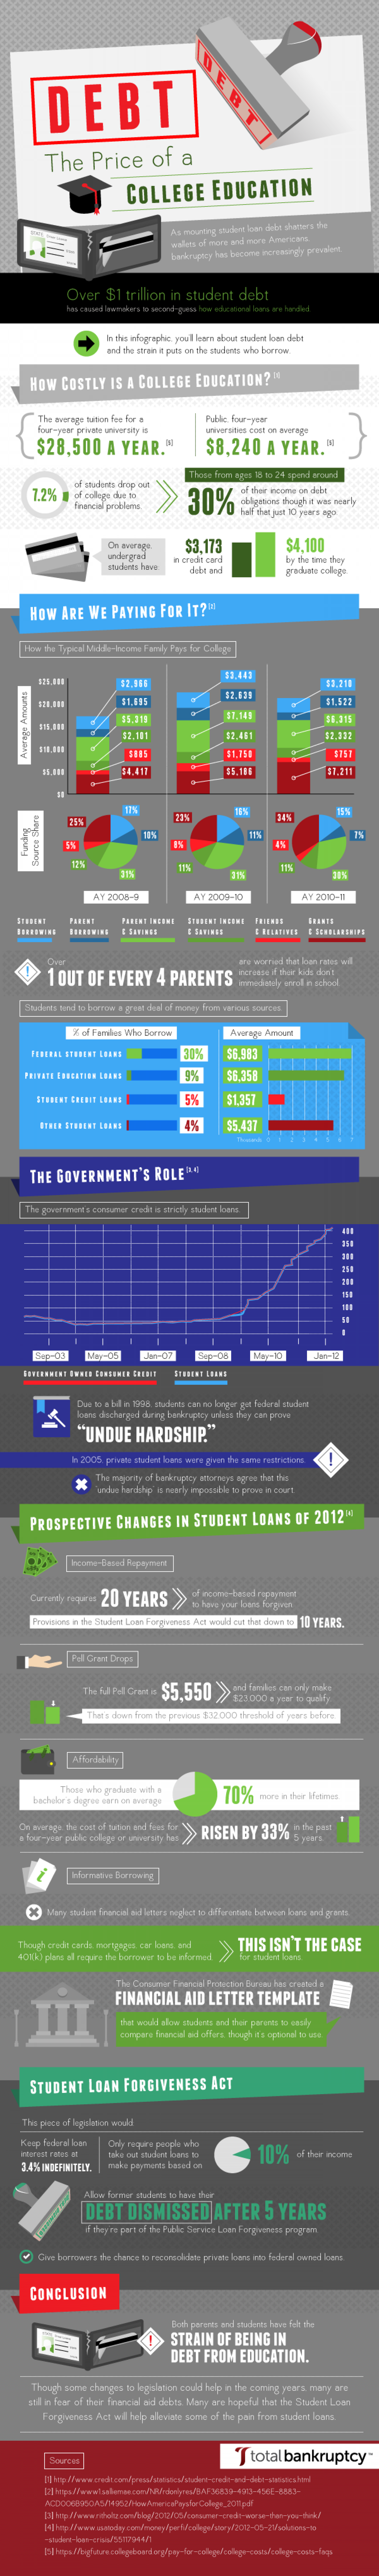 Will the cost of a college education lead to Bankruptcy? Infographic